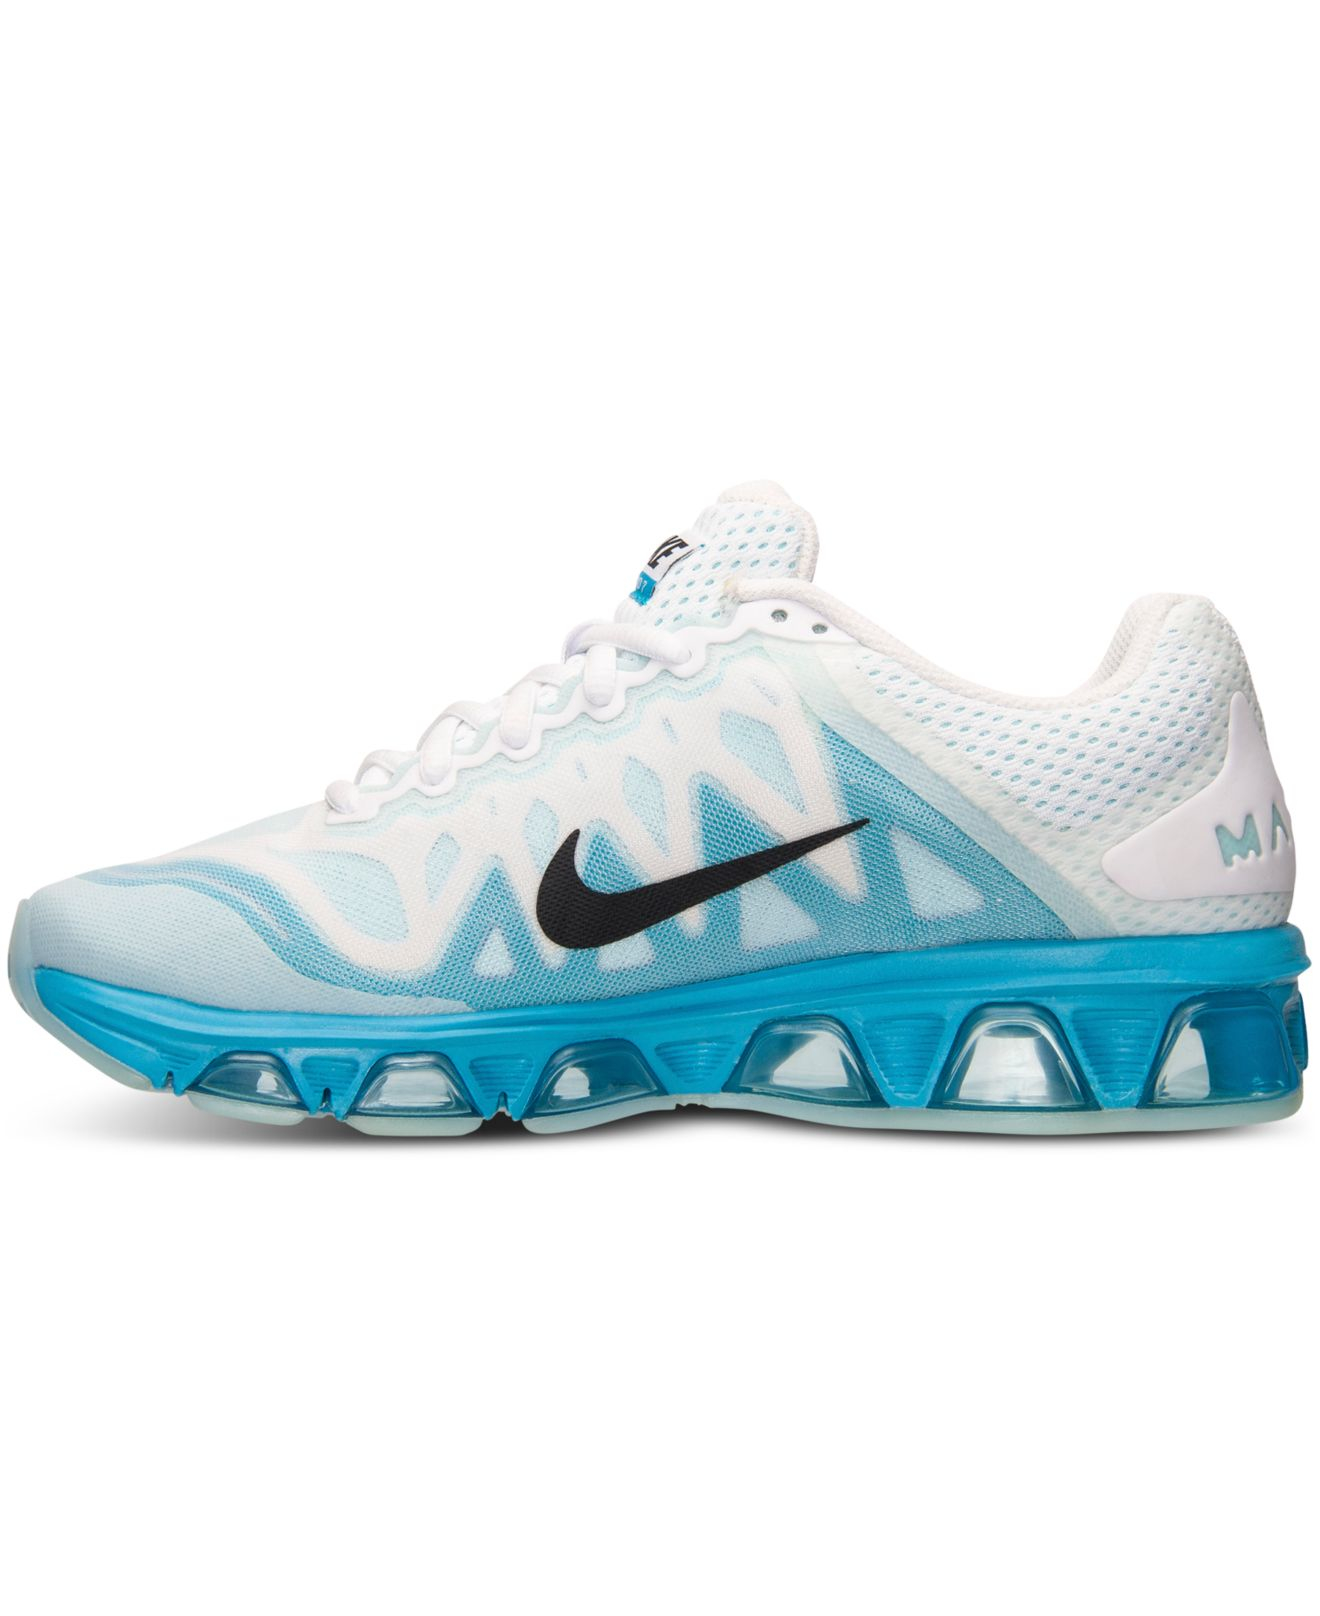 837d77071b837c Lyst - Nike Women s Air Max Tailwind 7 Running Sneakers From Finish ...